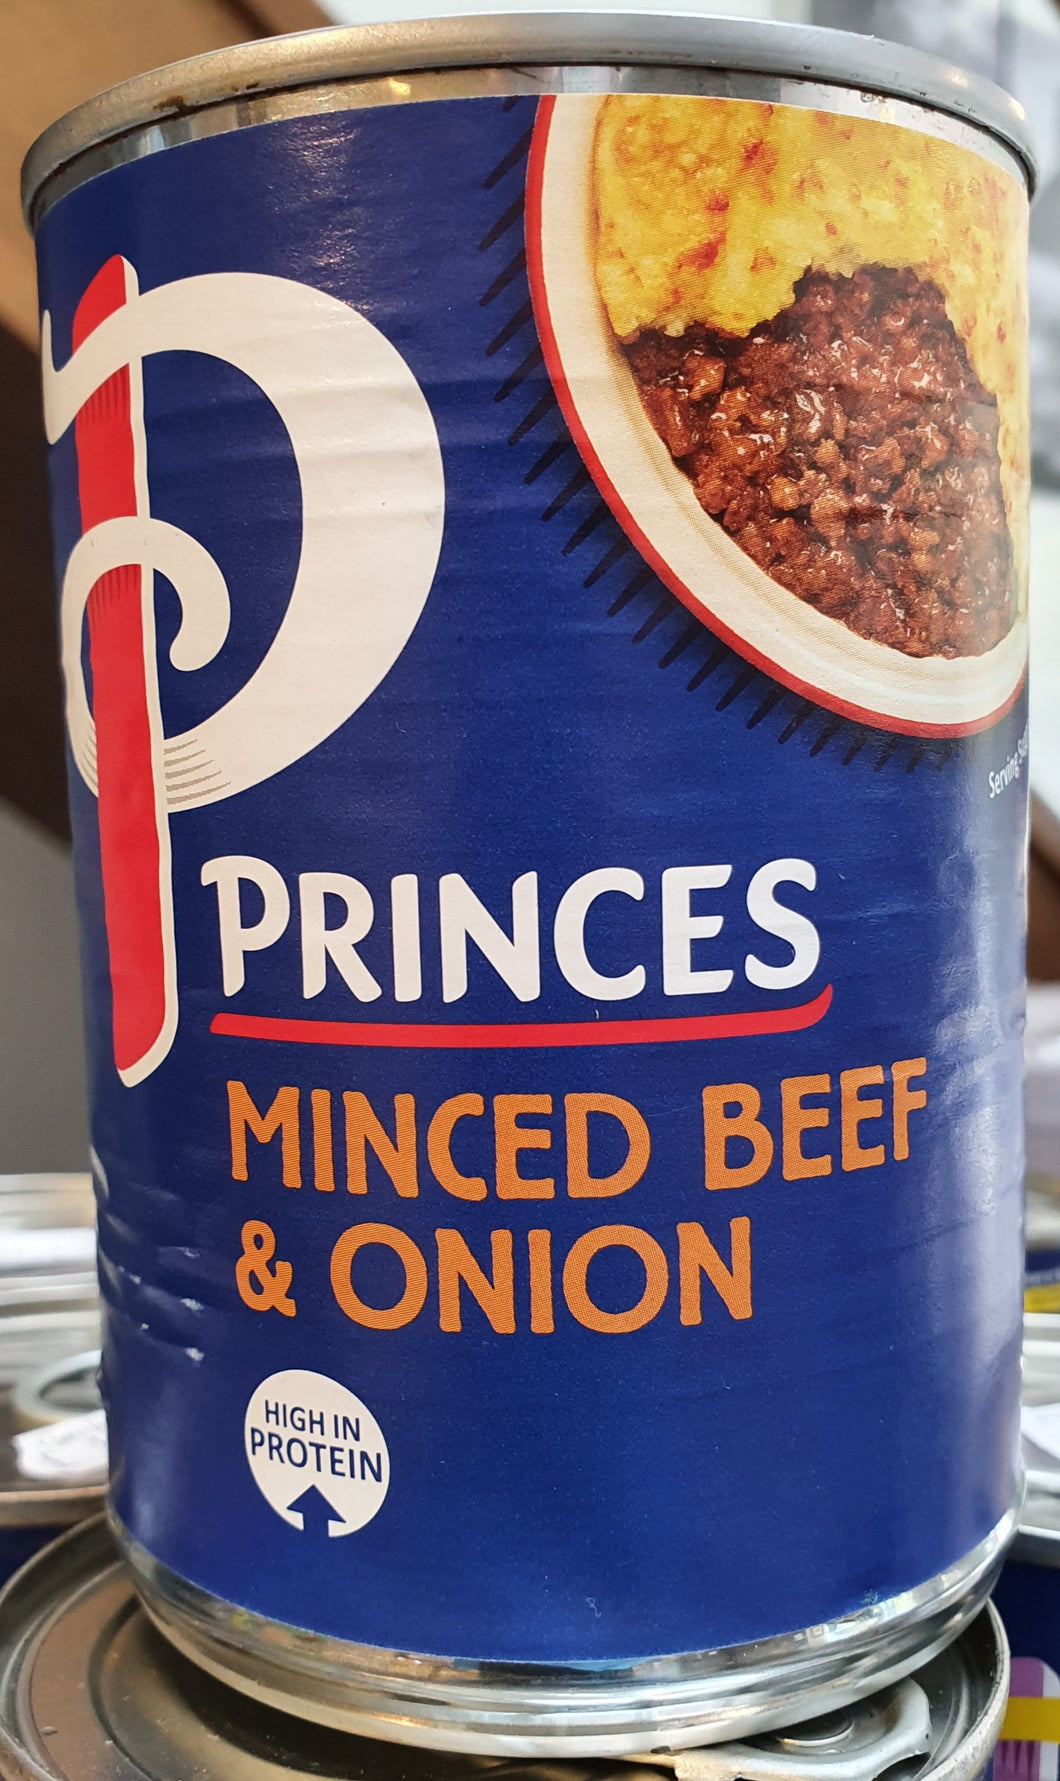 Minced beef and onion  392g